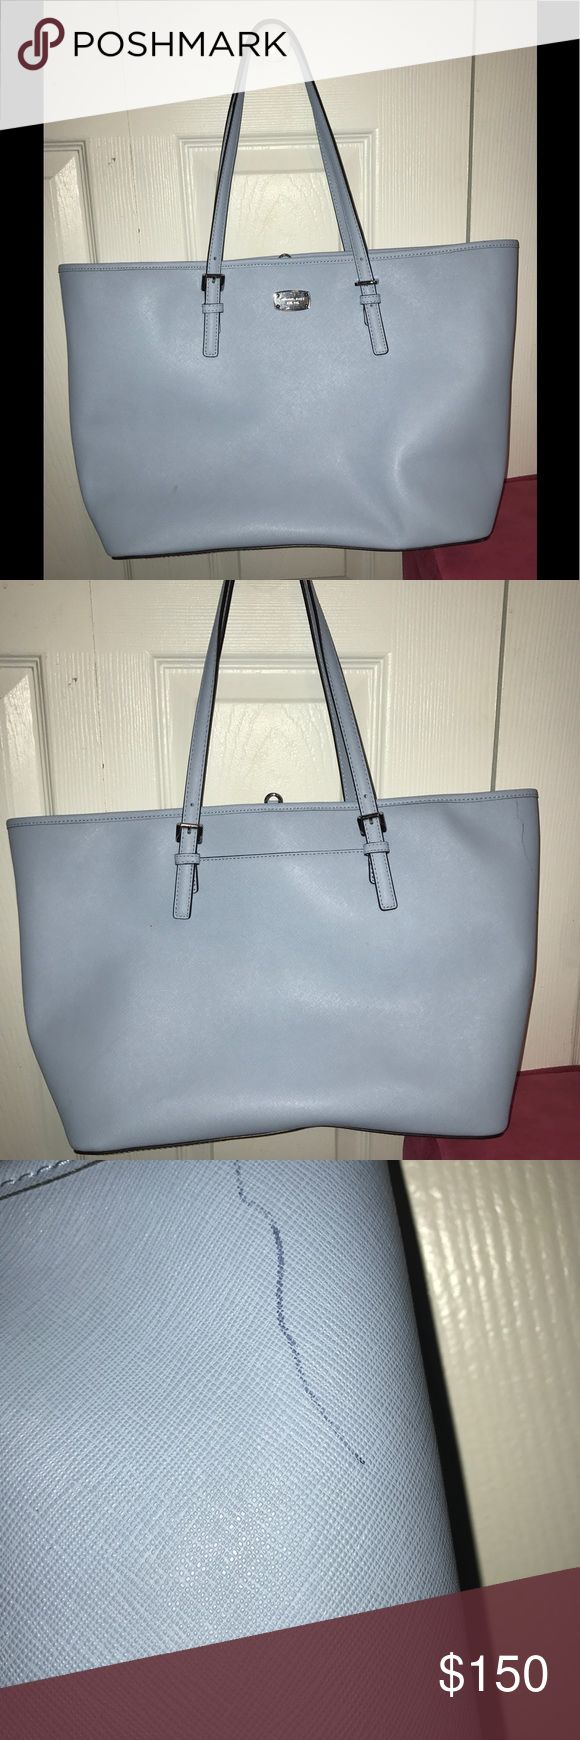 Michael Kors Purse Michael Kors purse in light blue with tan interior. In good condition with minor pen stain shown in photos. Accepting offers. Michael Kors Bags Shoulder Bags